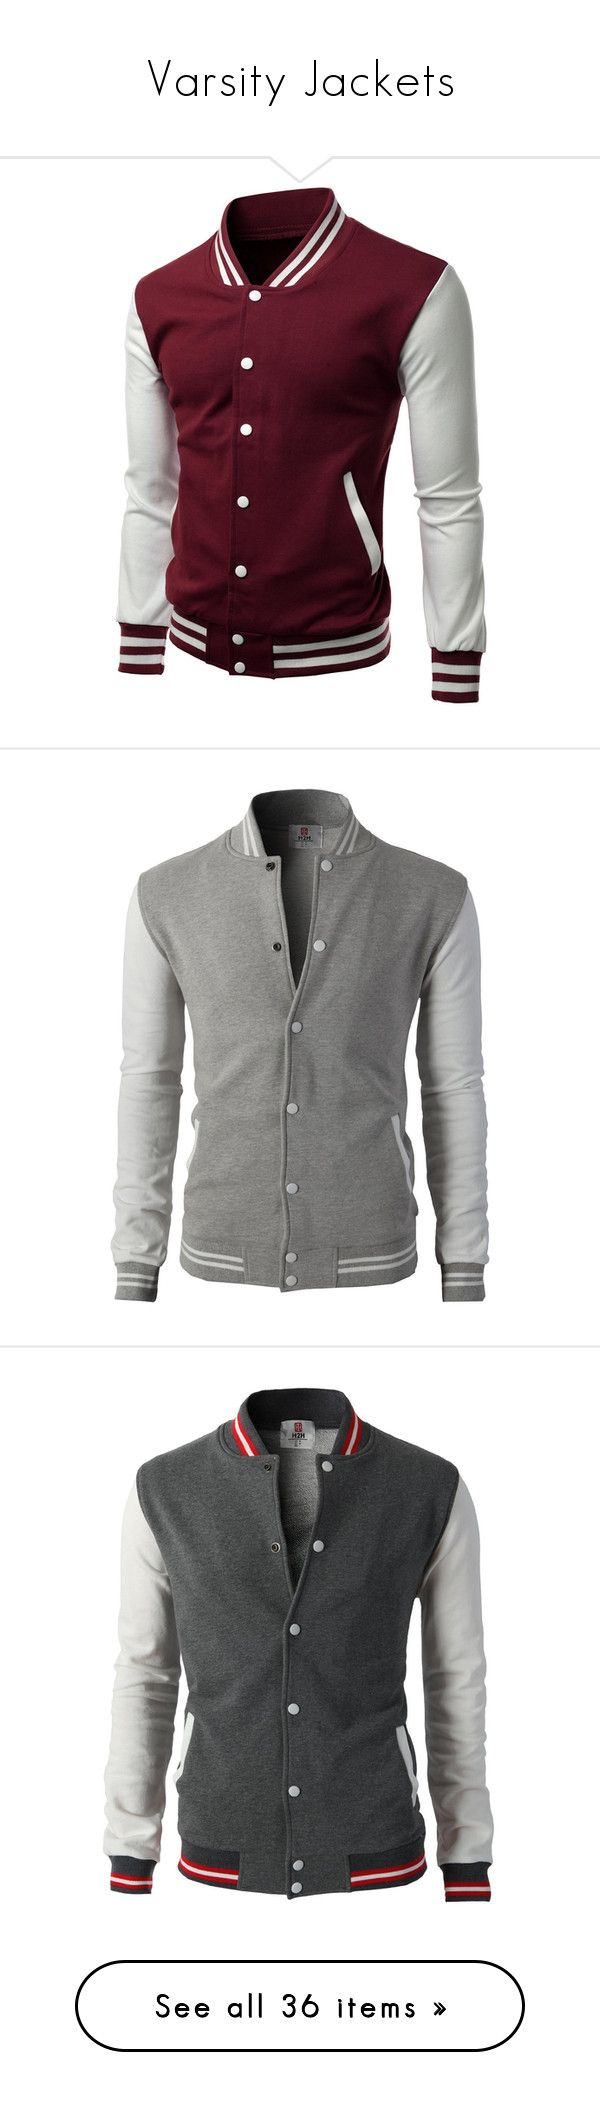 """Varsity Jackets"" by curiousgamer ❤ liked on Polyvore featuring men's fashion, men's clothing, men's activewear, men's activewear jackets, mens baseball jackets, mens activewear, men's outerwear, men's jackets, mens slim fit outerwear and mens cotton bomber jacket"